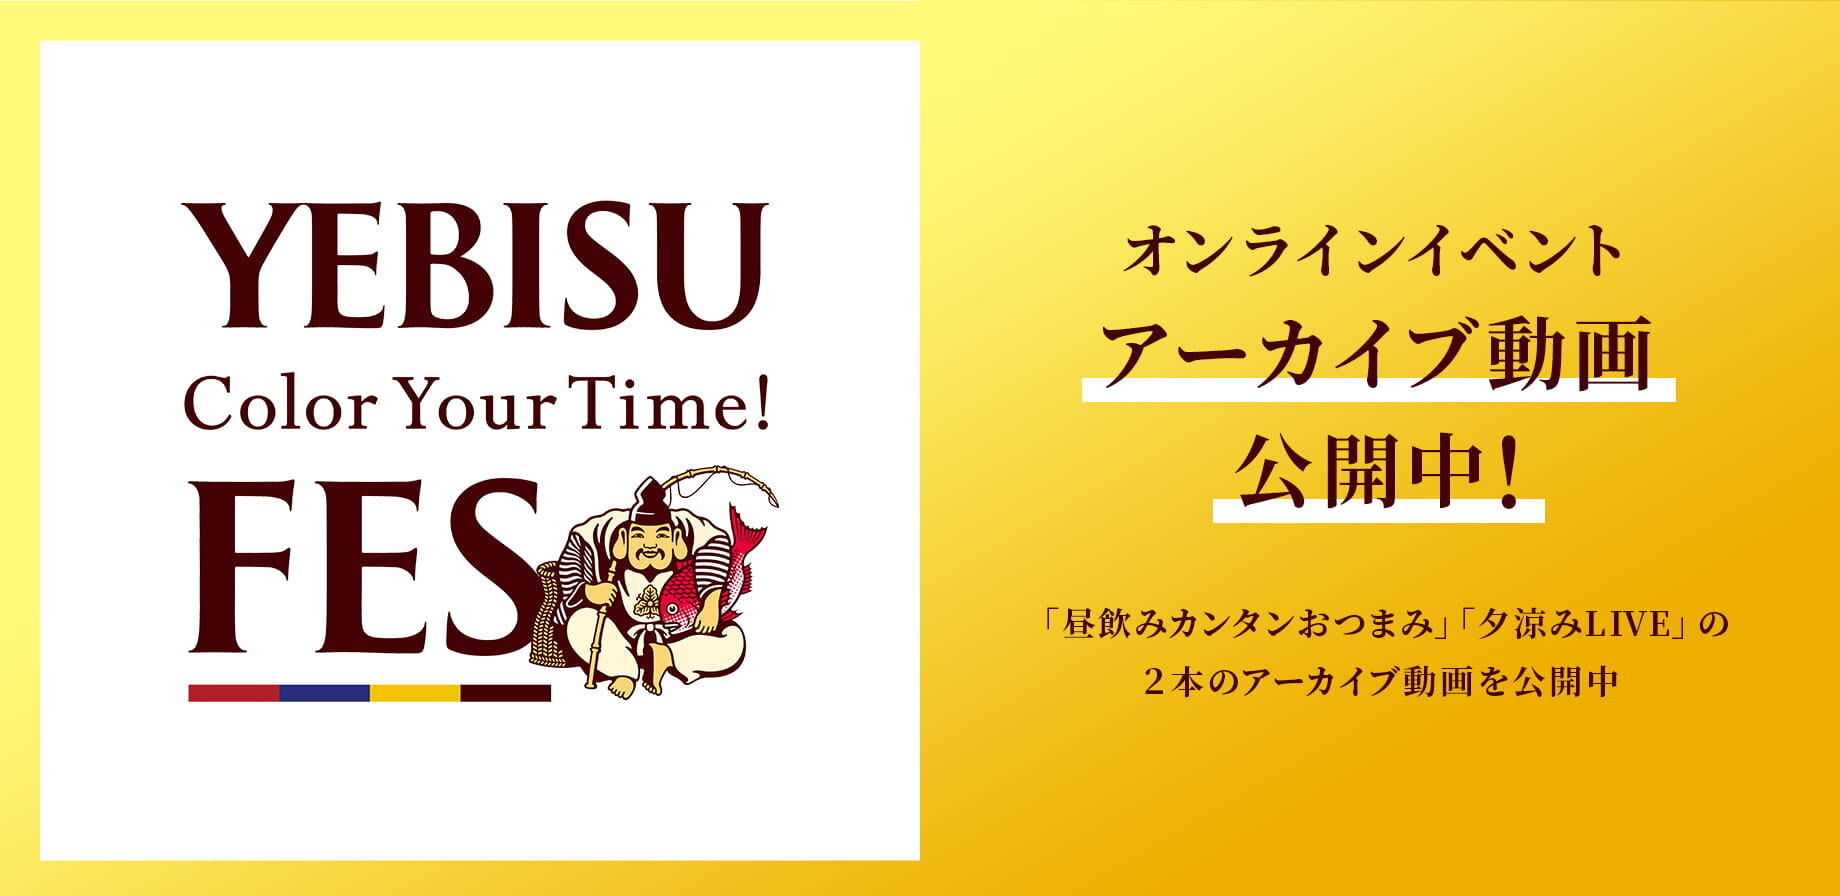 YEBISU Color Your Time! FES